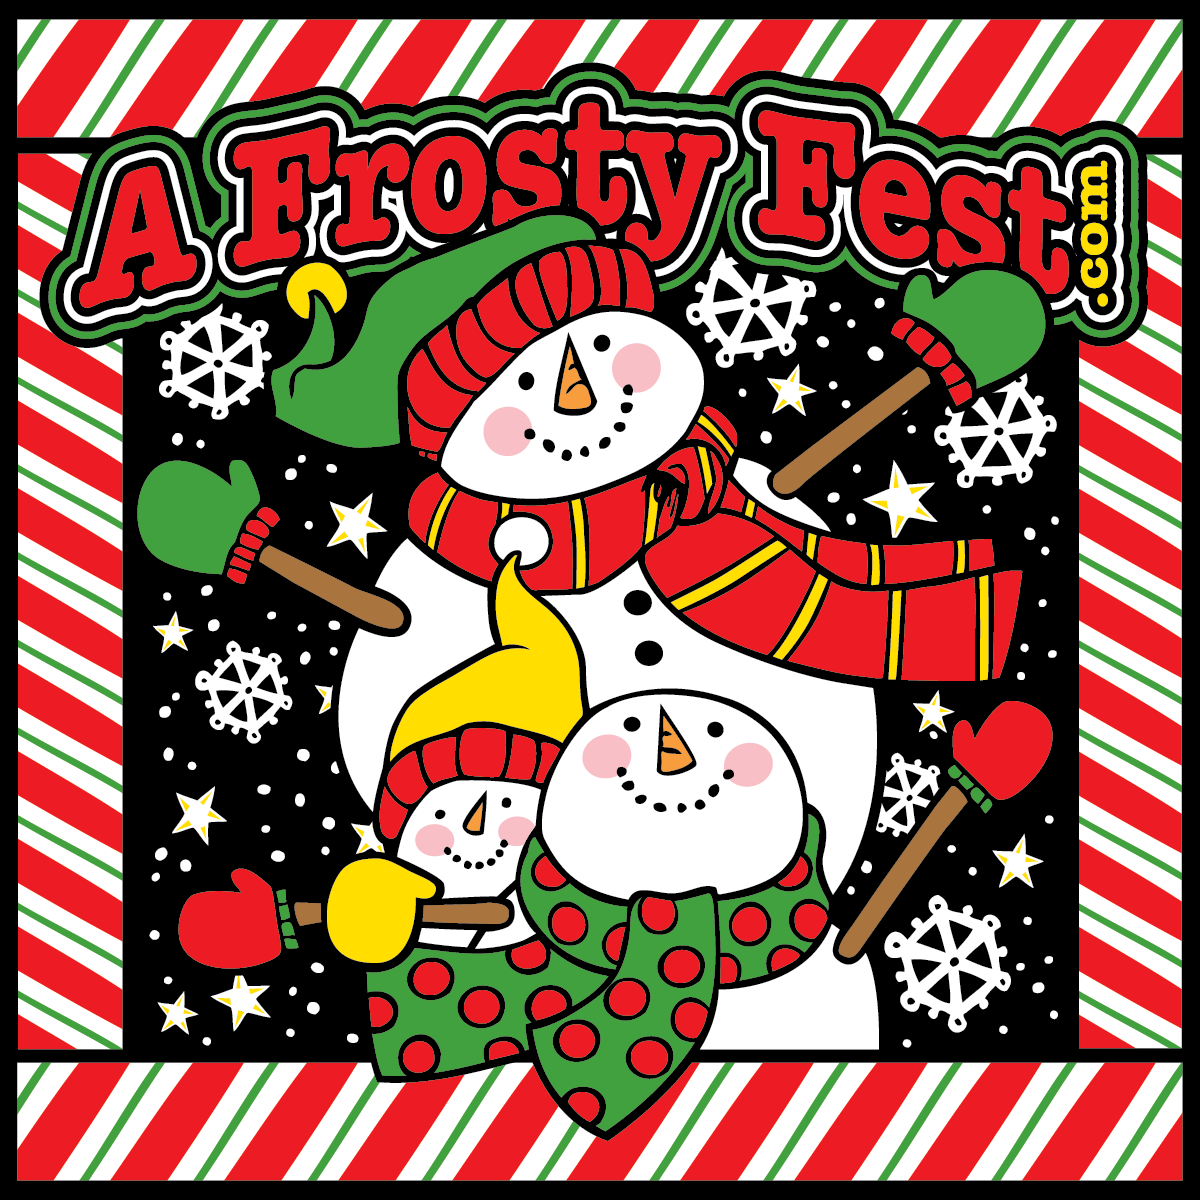 IN PERSON A Frosty Fest at Headless Horseman Hayrides and Haunted Houses